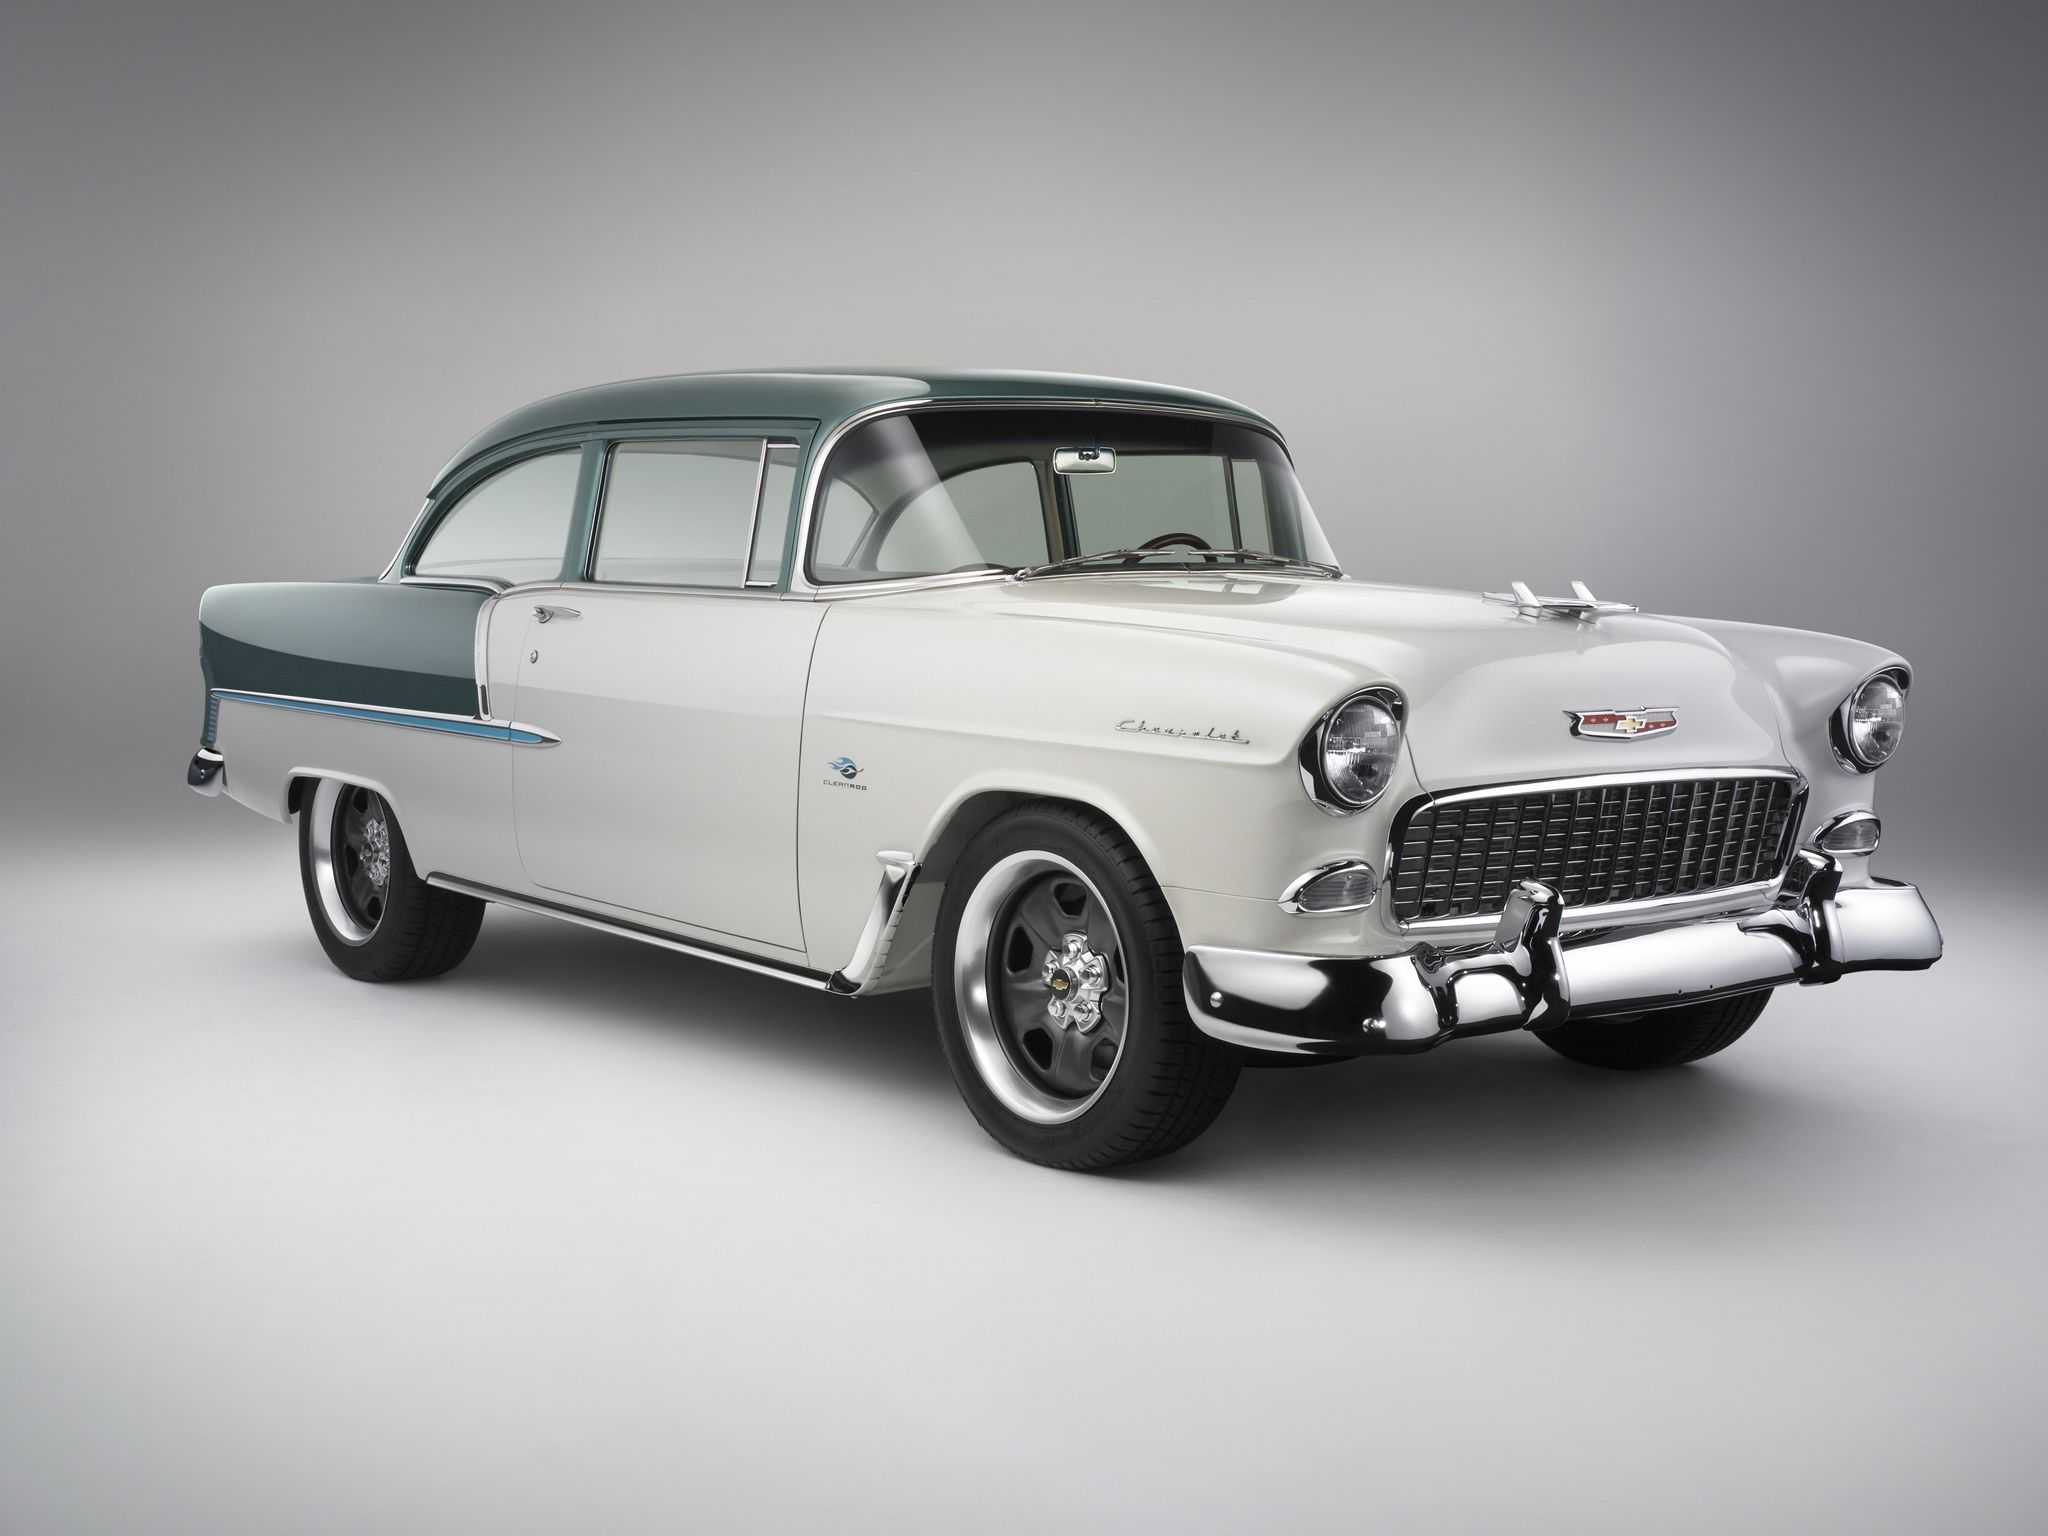 Chevrolet ls crate engineszz 572 720r big block crate engine 1955 chevrolet bel air coupe retro muscle hot rod rods malvernweather Image collections